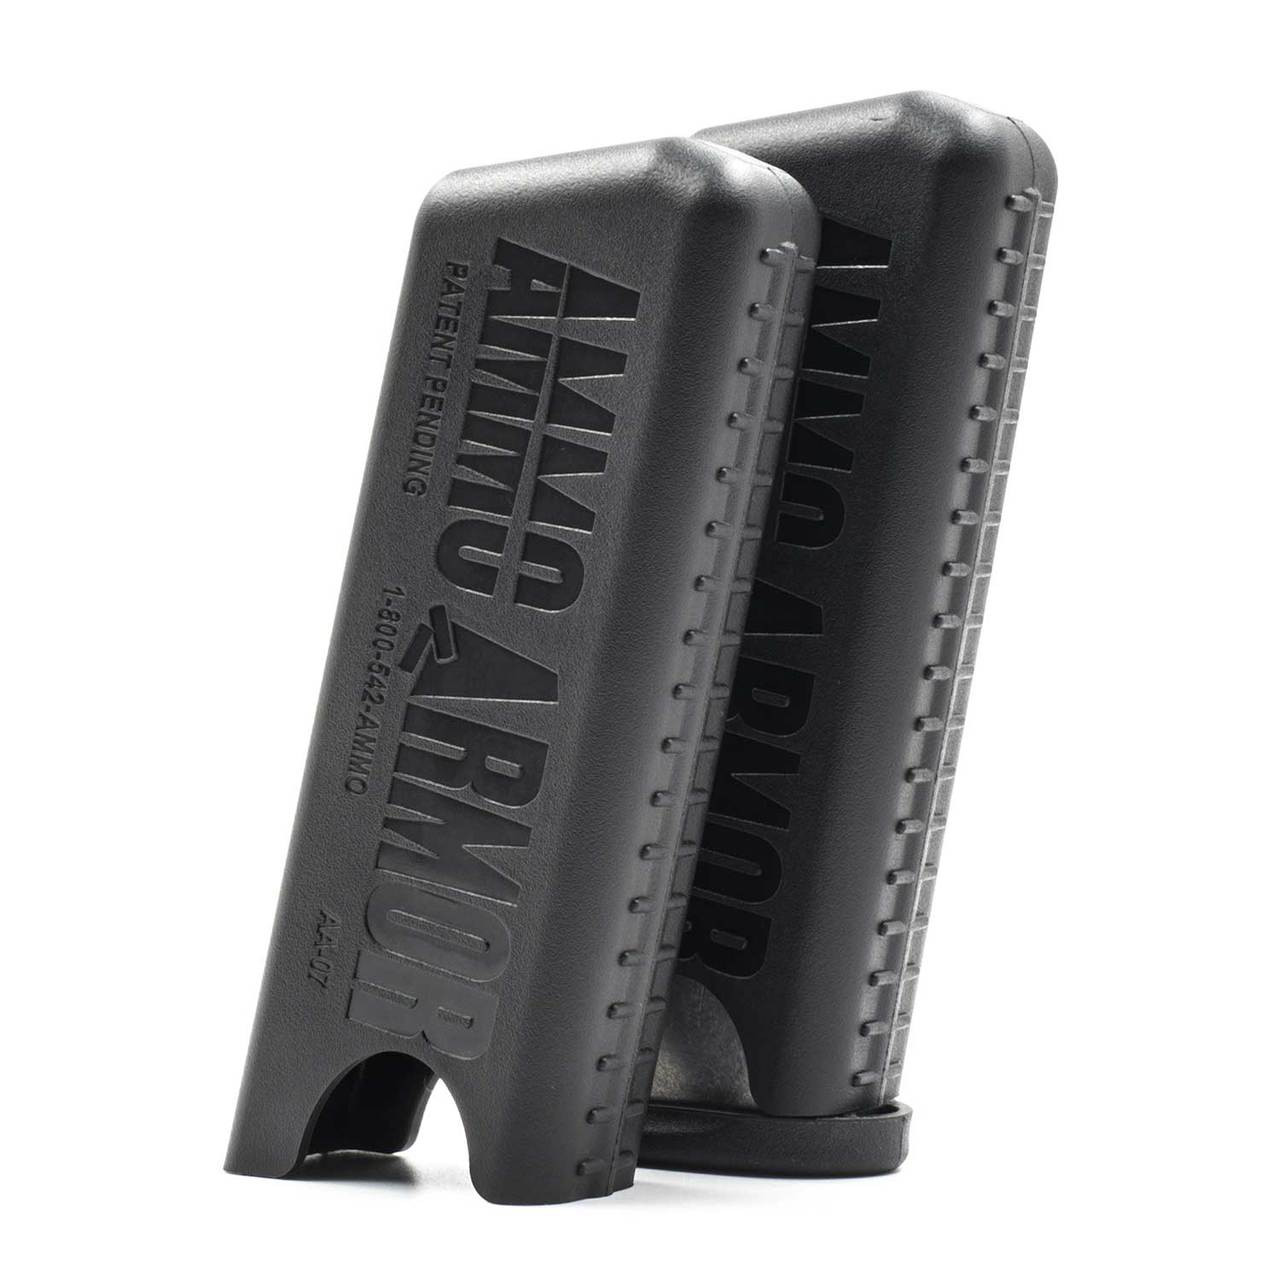 Smith & Wesson M&P Shield 40 Magazine